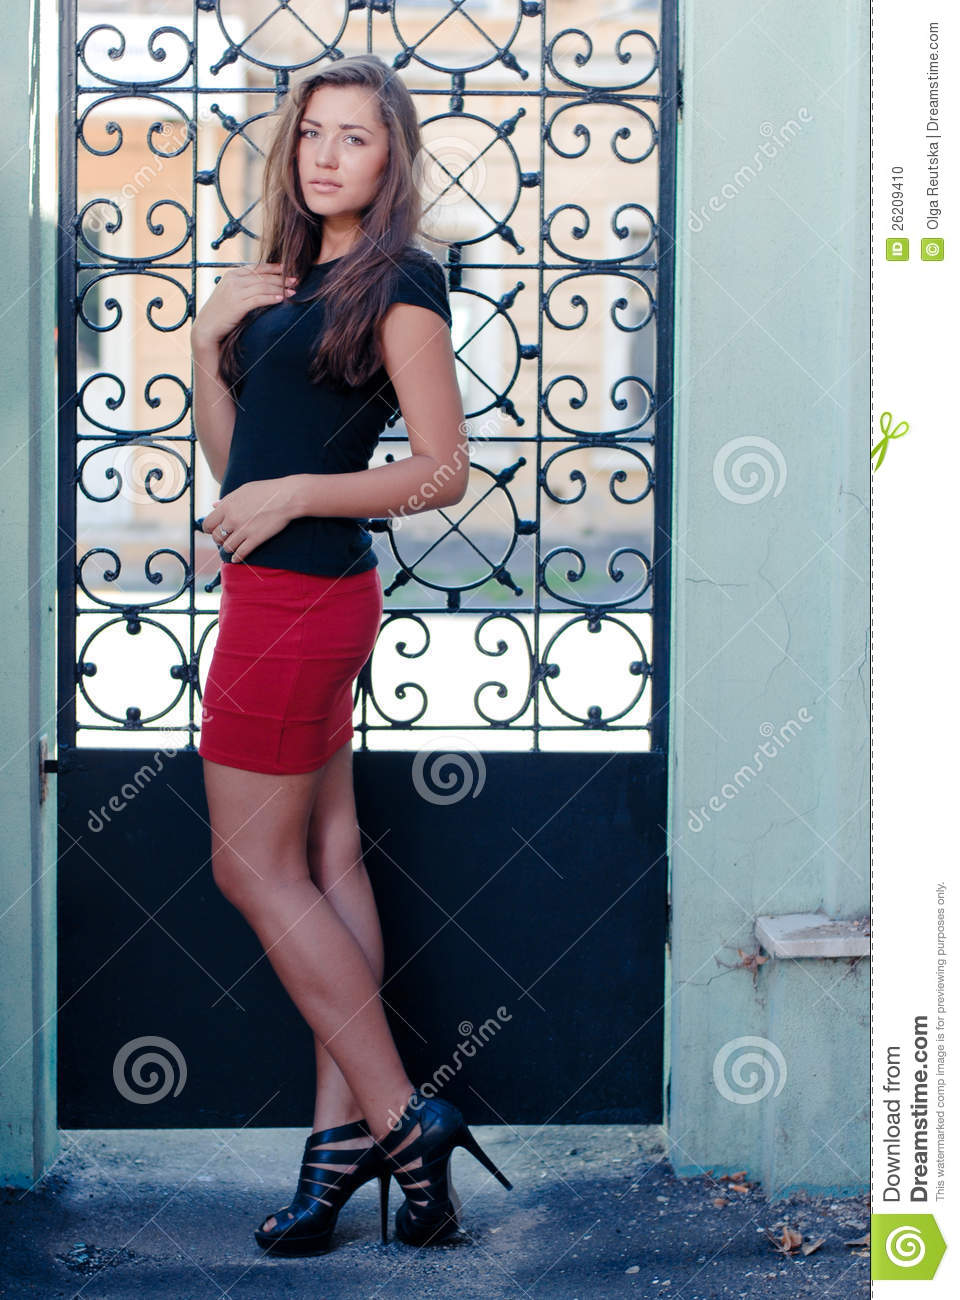 iron gate cougar women She catches him she dominates him she enjoys him victoria we go out swinging older married woman loses inhibitions on girls' holiday a lonely cougar enjoys some summer romance.